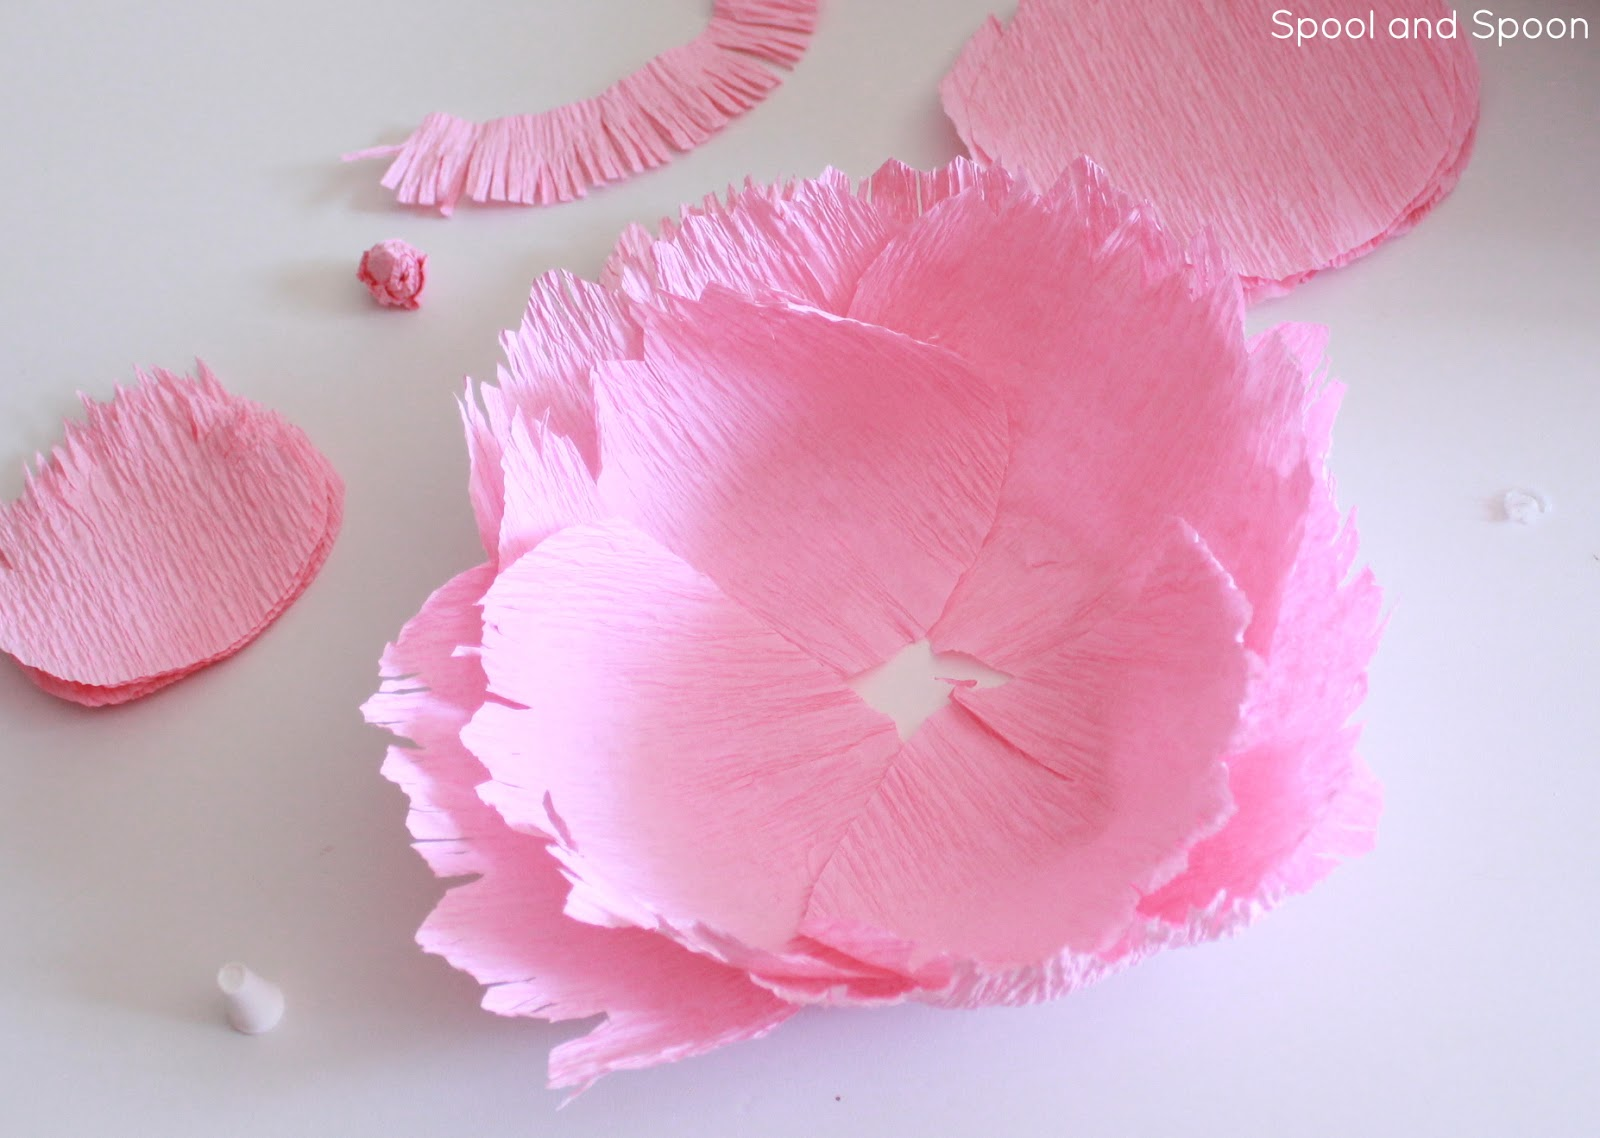 Giant crepe paper flowers image collections flower decoration ideas giant crepe paper flowers image collections flower decoration ideas giant crepe paper flowers image collections flower mightylinksfo